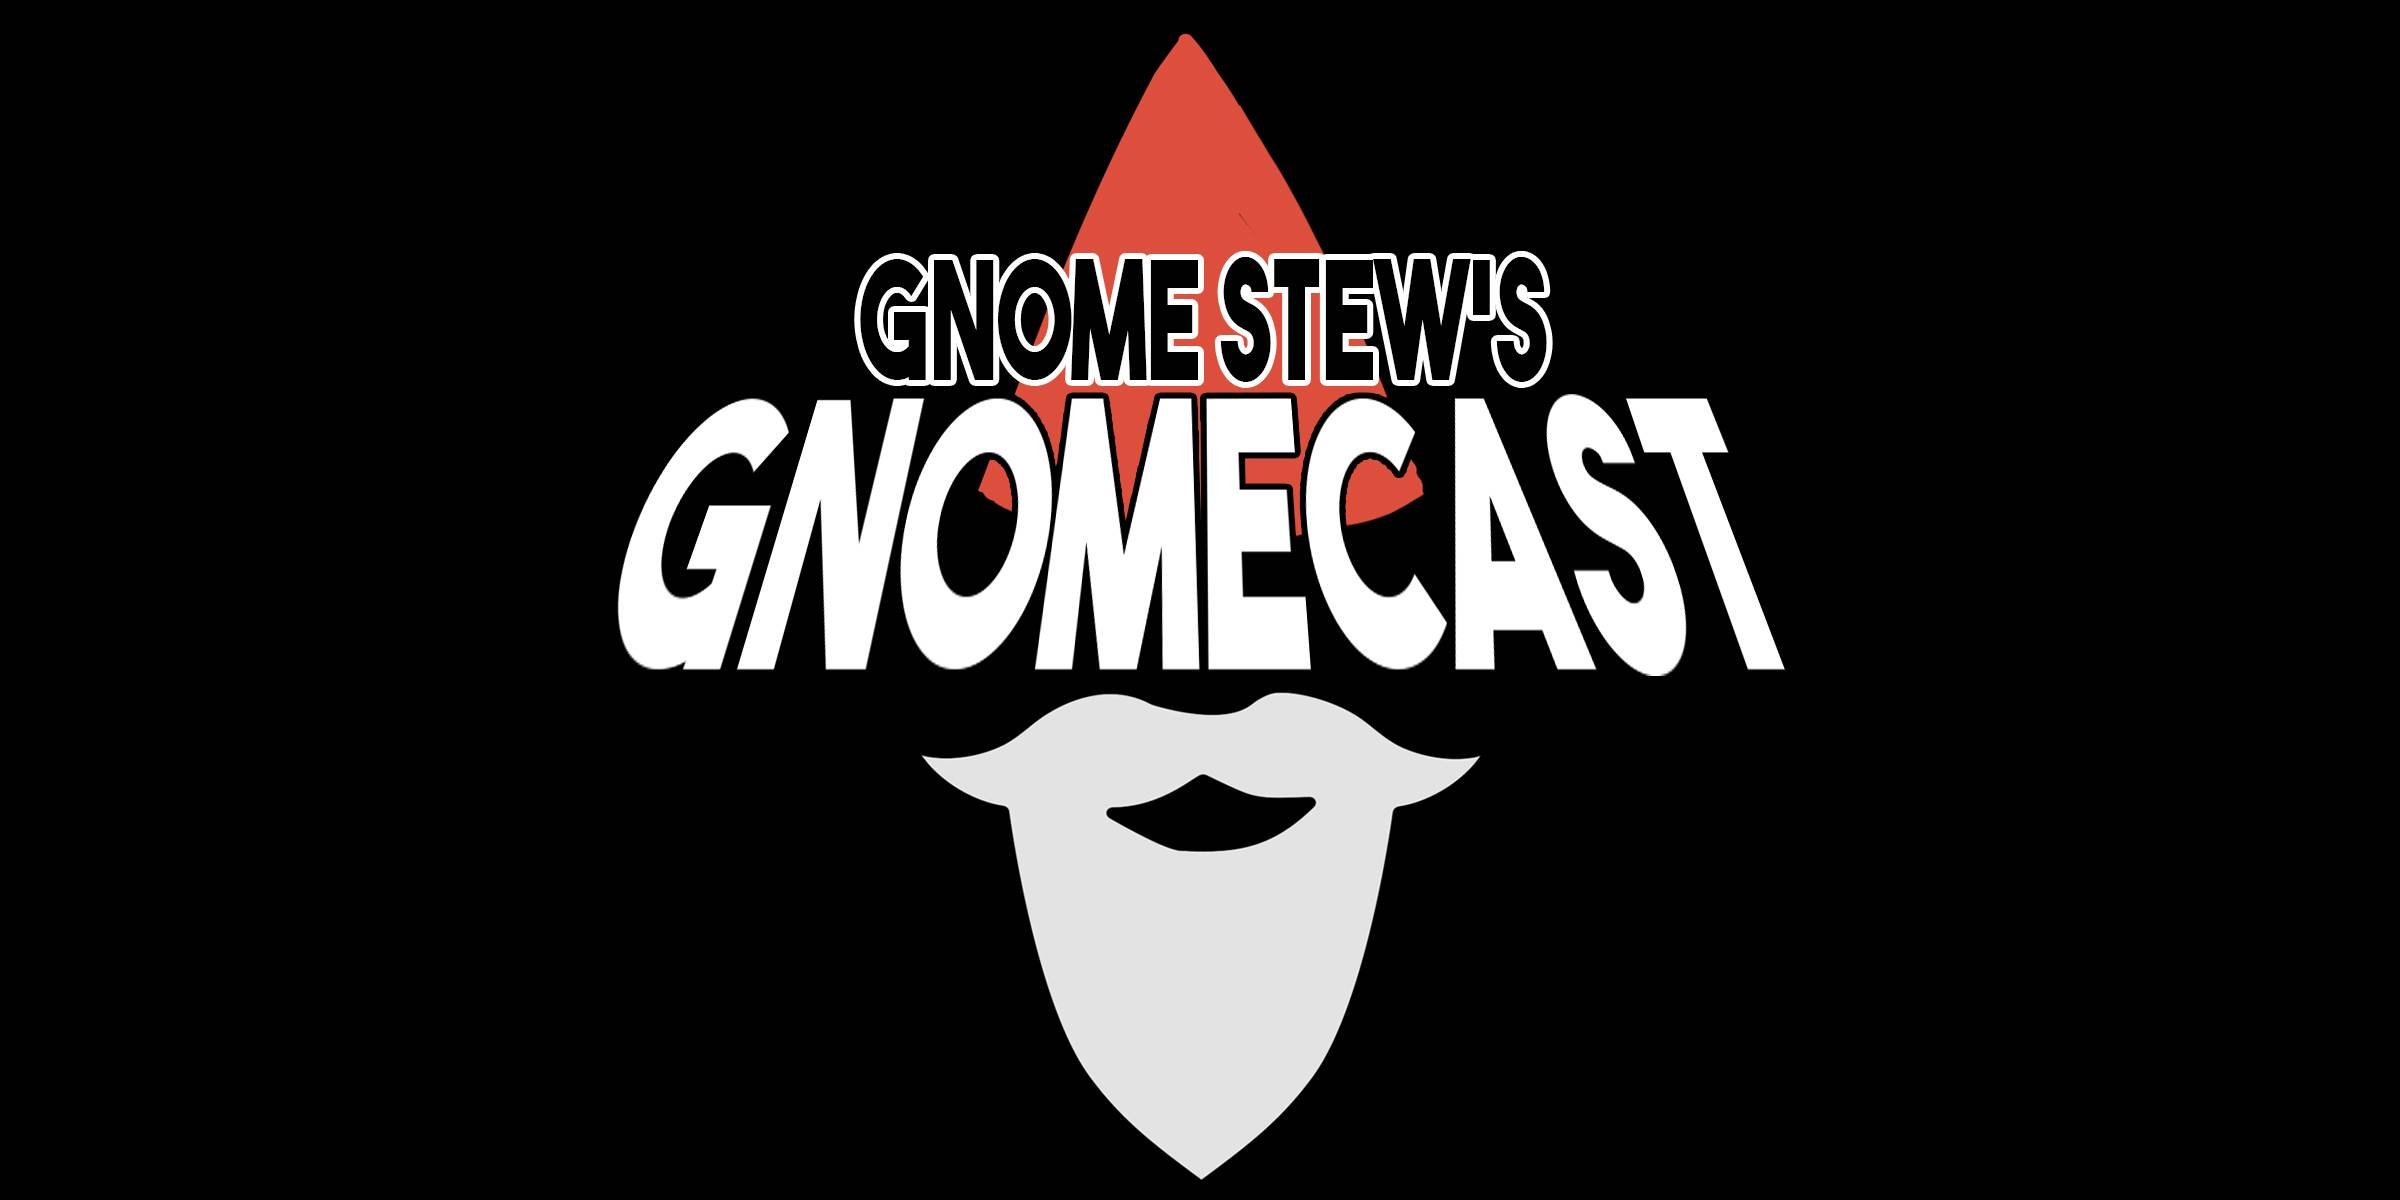 The Gnomecast Logo - A Gnome red hat with beard and the words Gnome Stew's Gnomecast over them and a black background.